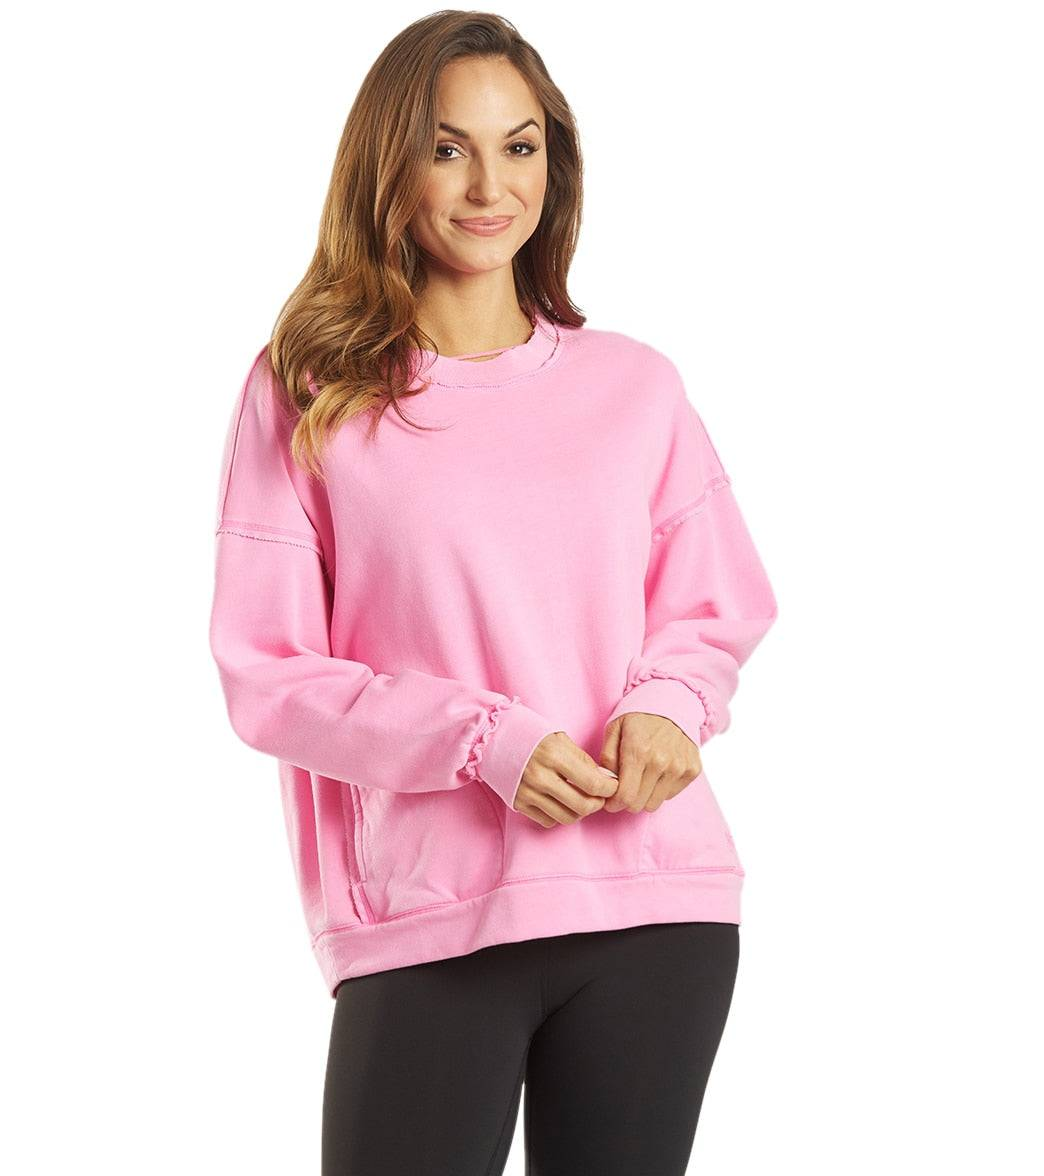 Free People Women's Solid Metti Crew Neck Pullover - Miami Pink - Small Cotton Shirt